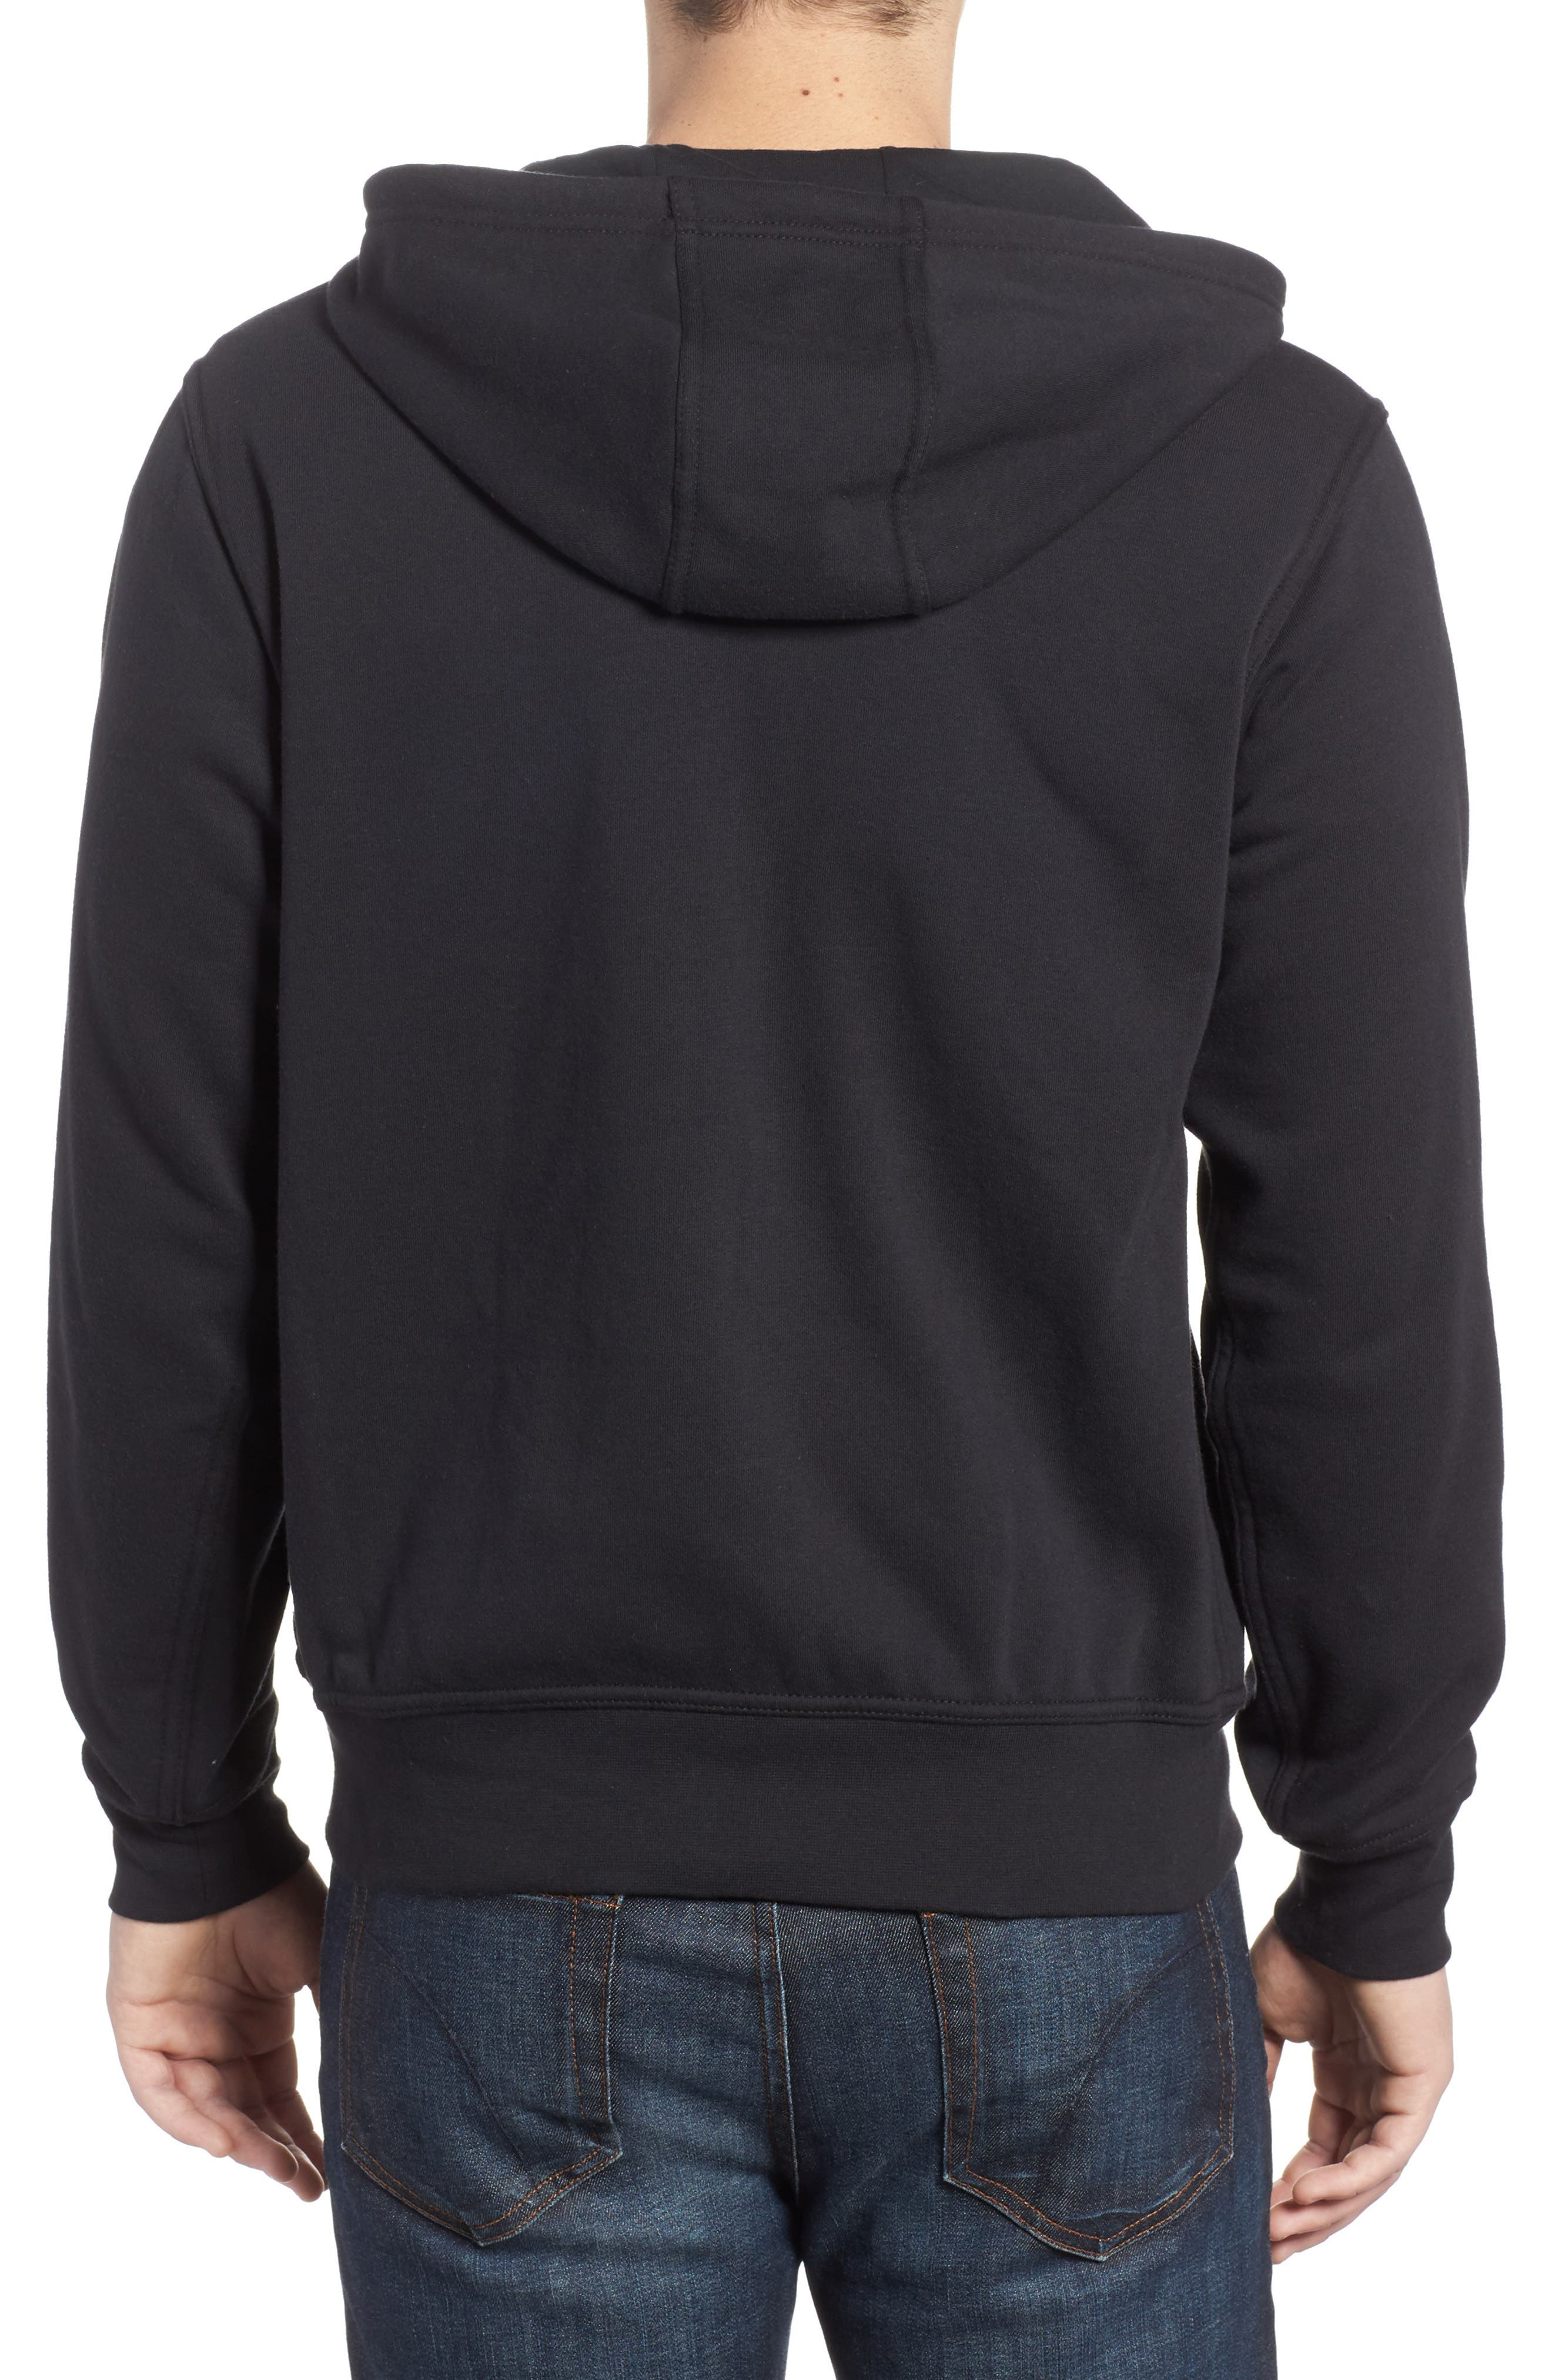 Alternate Image 2  - The North Face Half Dome Cotton Blend Zip Hoodie